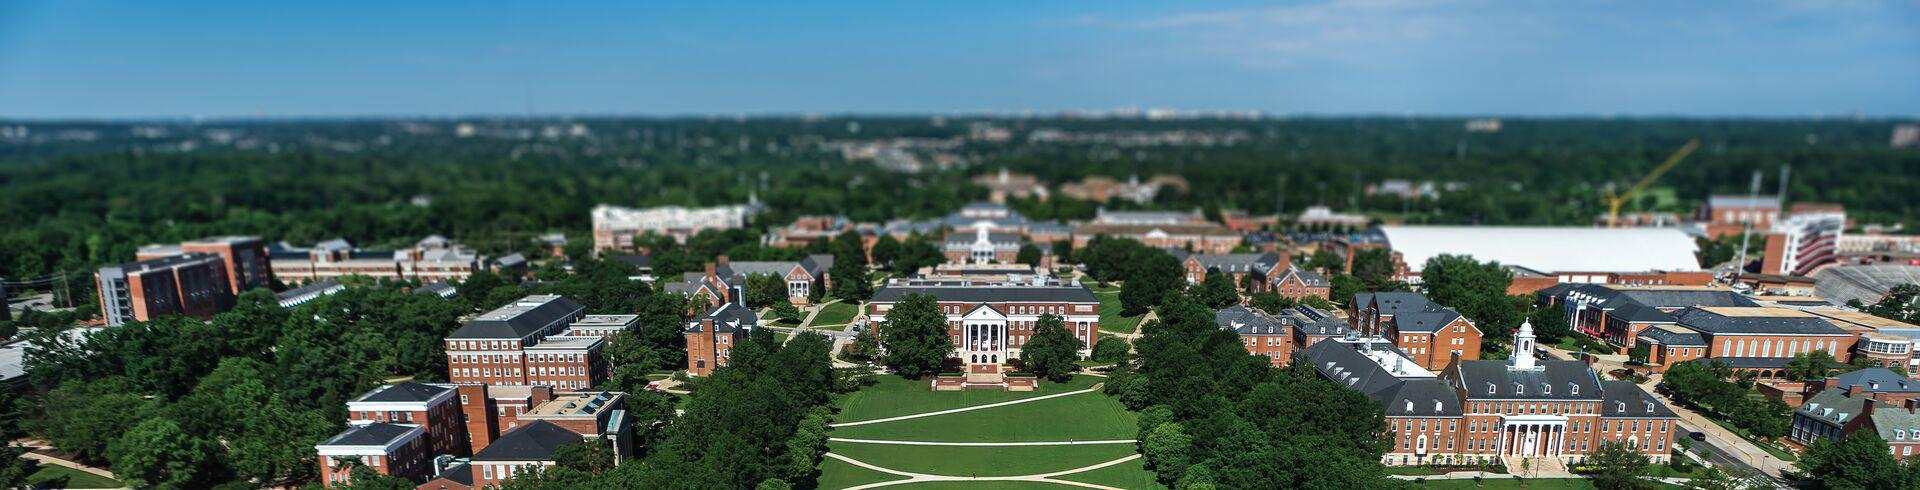 UMD Campus from above